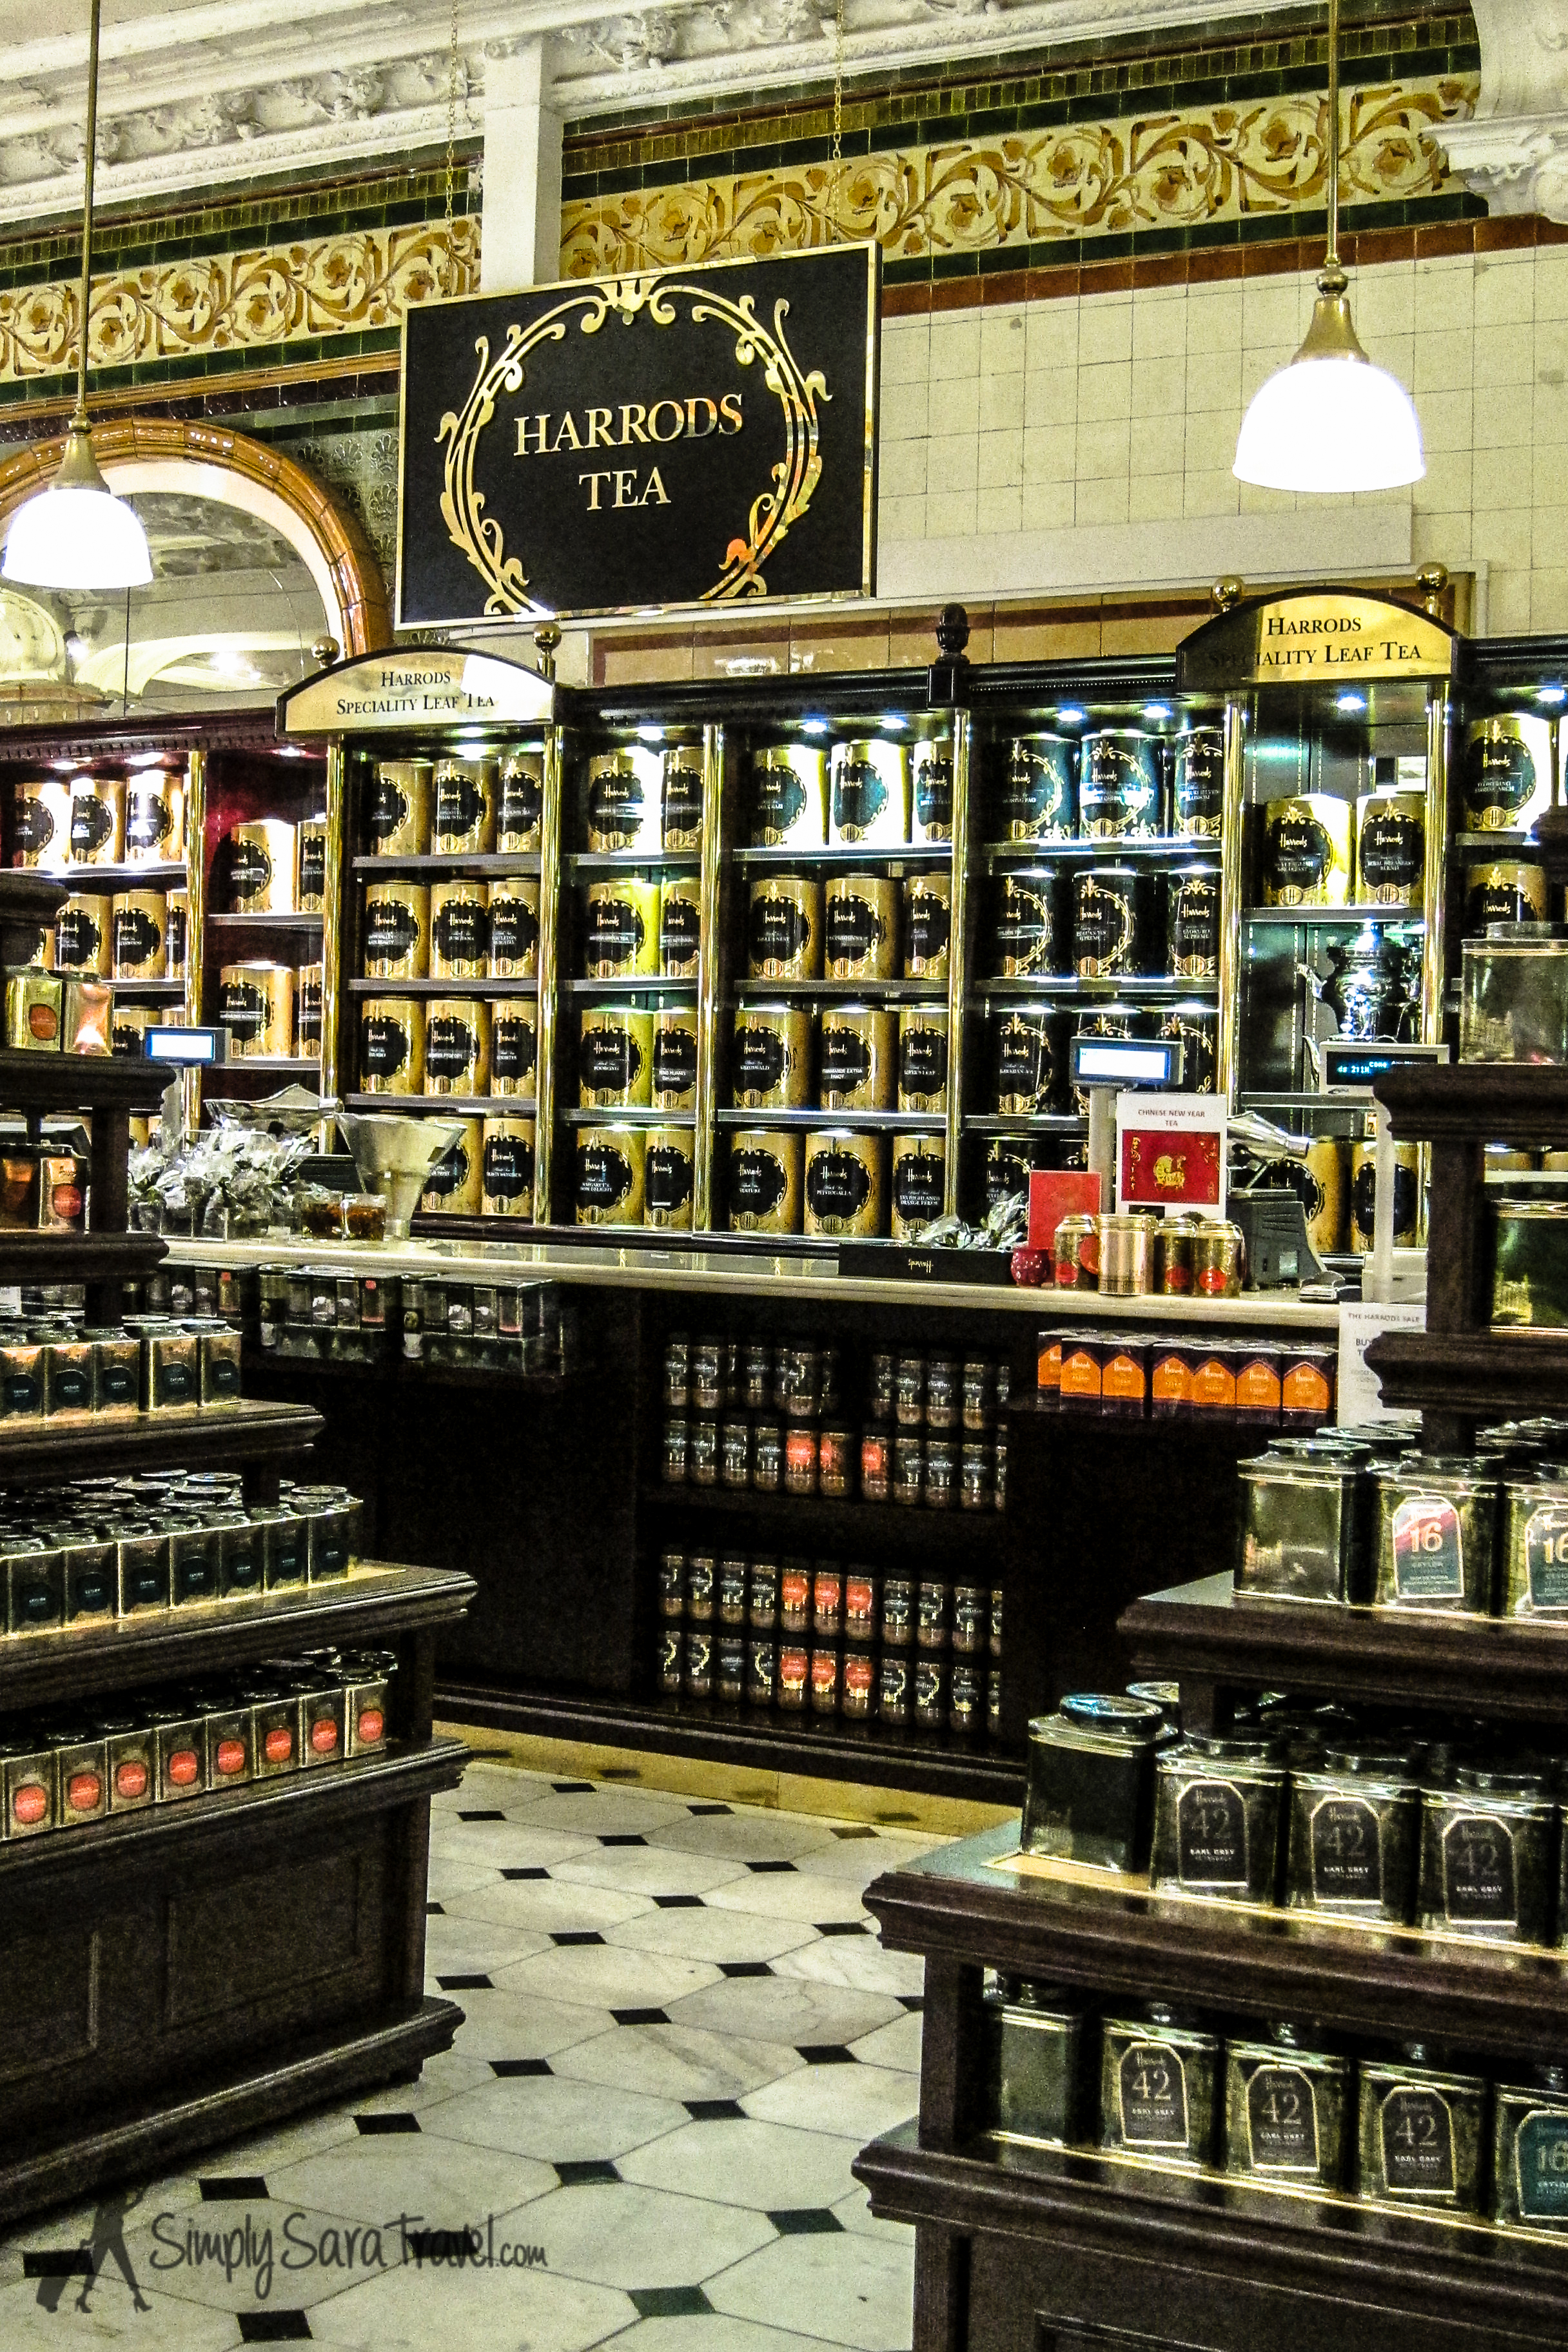 Have you ever found a safe, happy place while away from home?  Harrods'  food hall became that place for me when I was lonely and missing home. I didn't need to buy or eat anything - my spirits were lifting by just walking around!